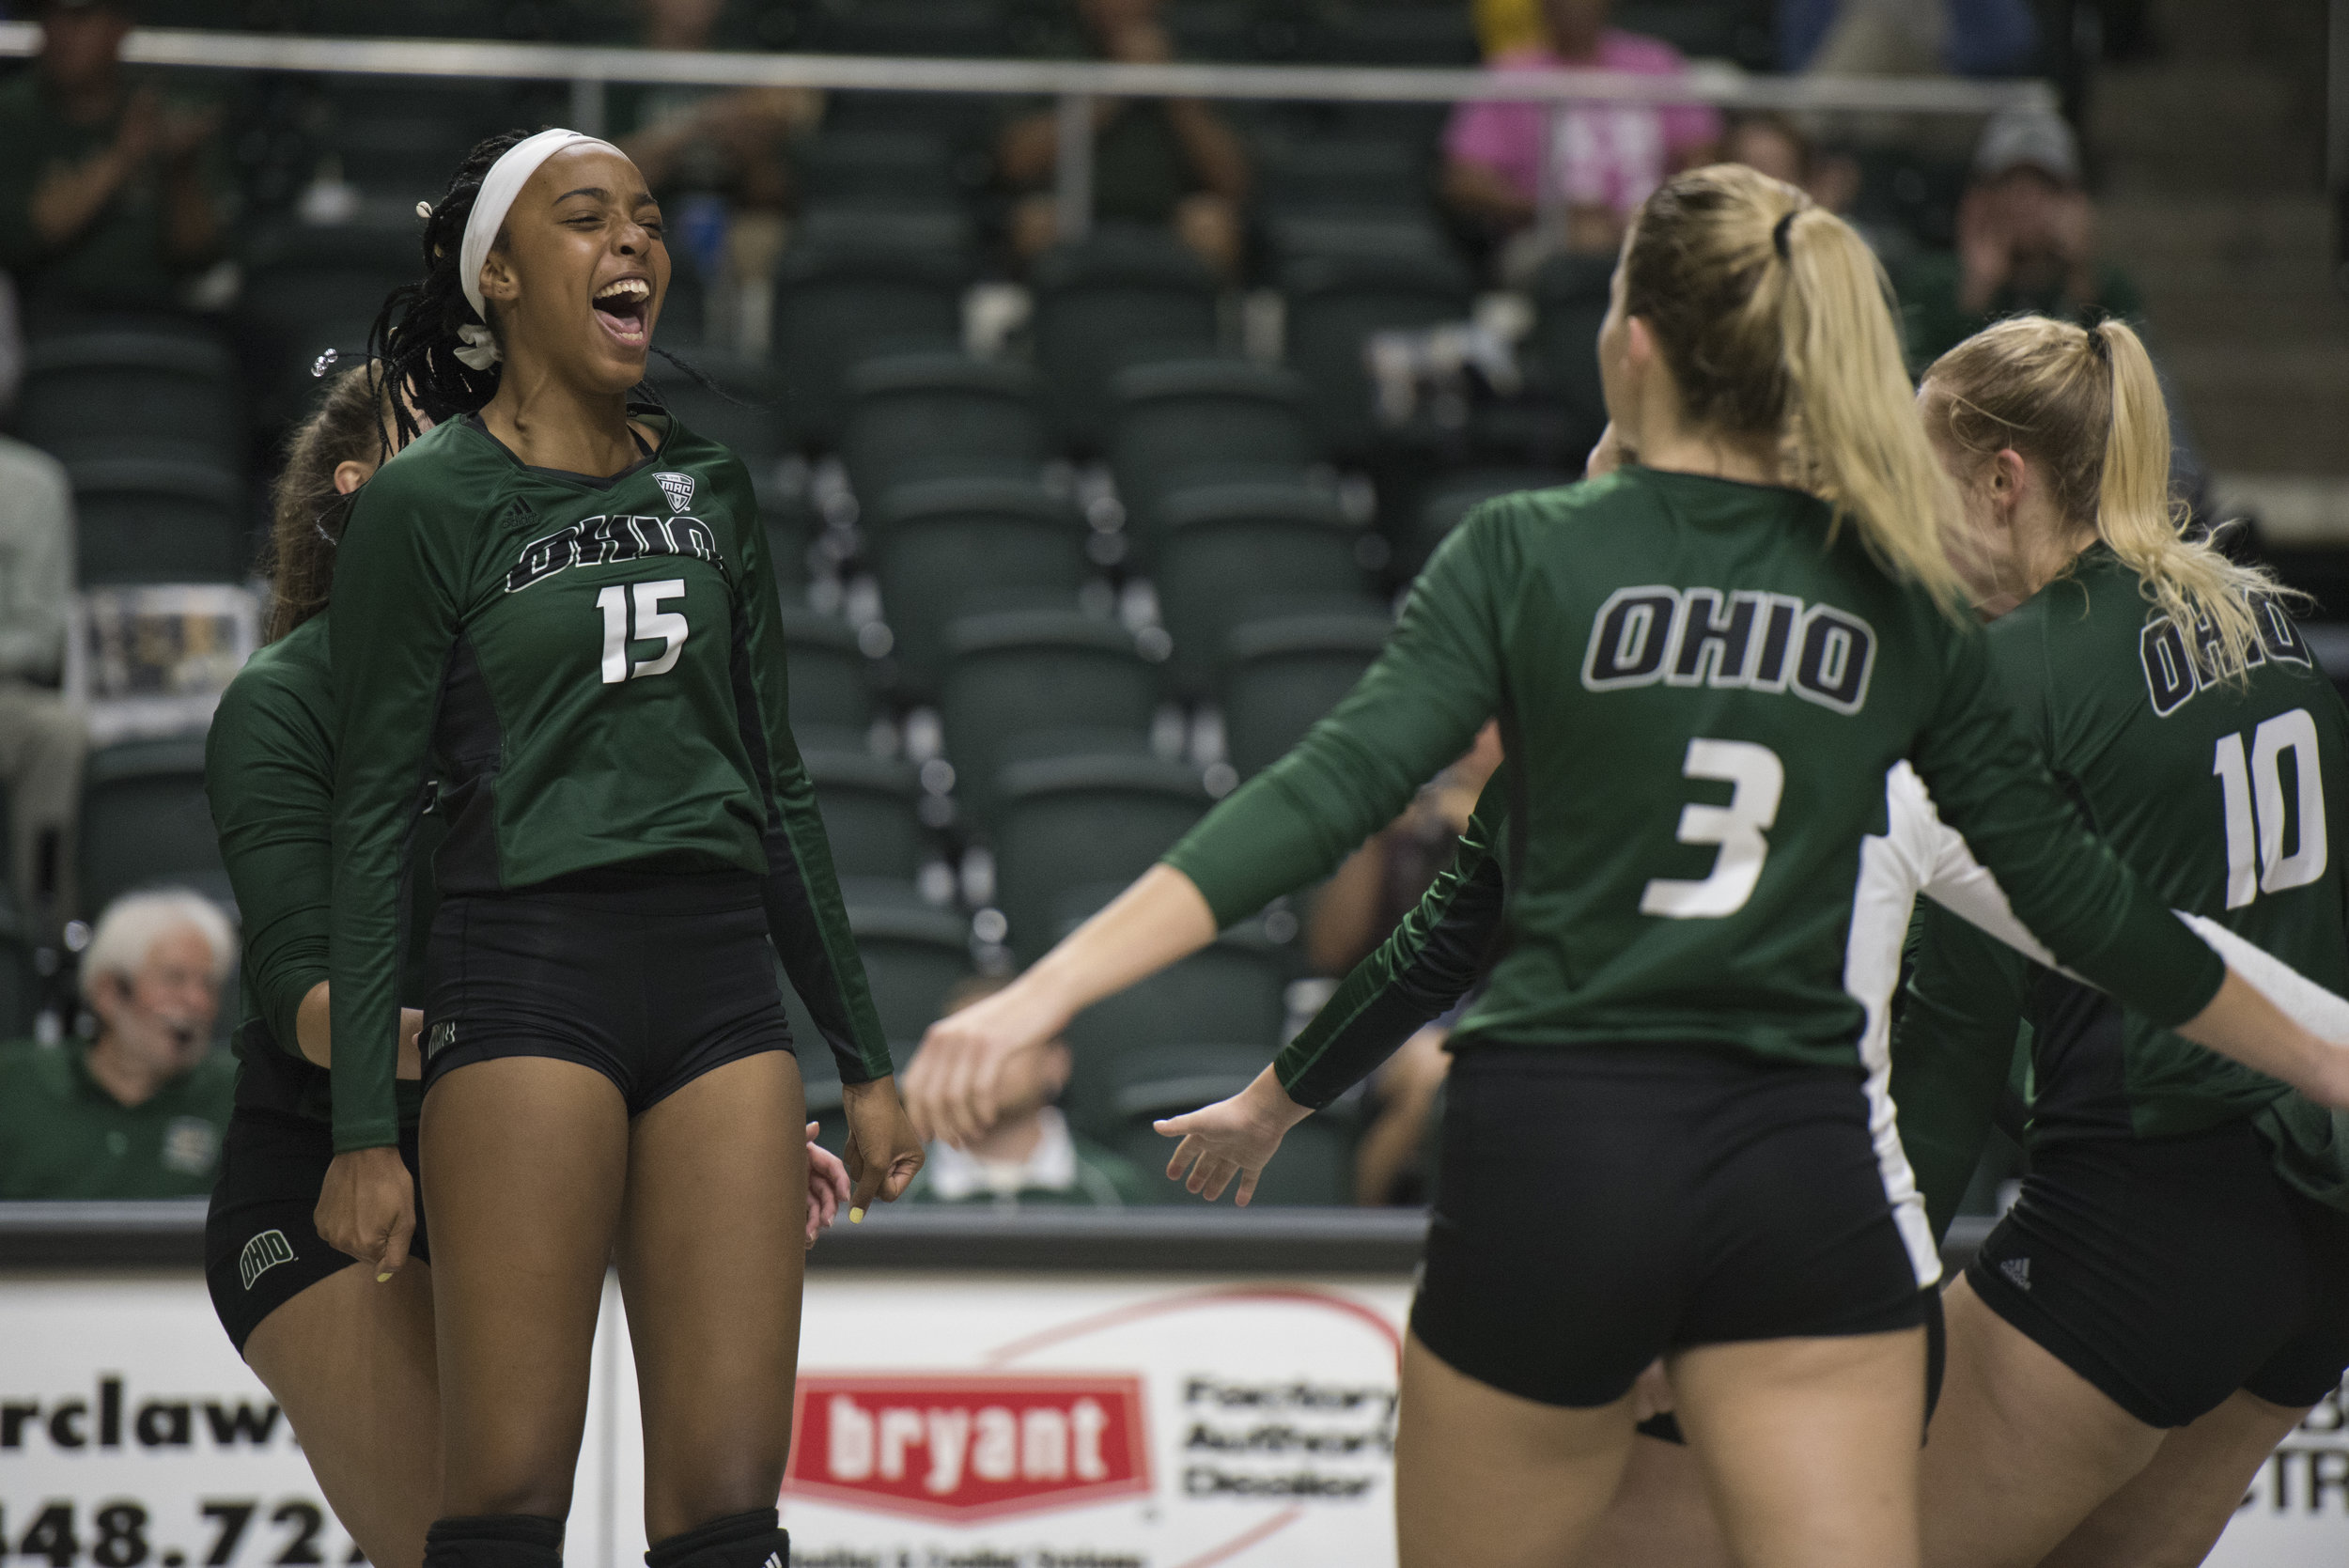 Tia Jimerson (#15) cheers as she runs to embrace her teammates Lizzie Stephens (#3) and Carley Remmers (#10) after scoring a point against Georgia on Sept. 1, 2017 at the Convo.